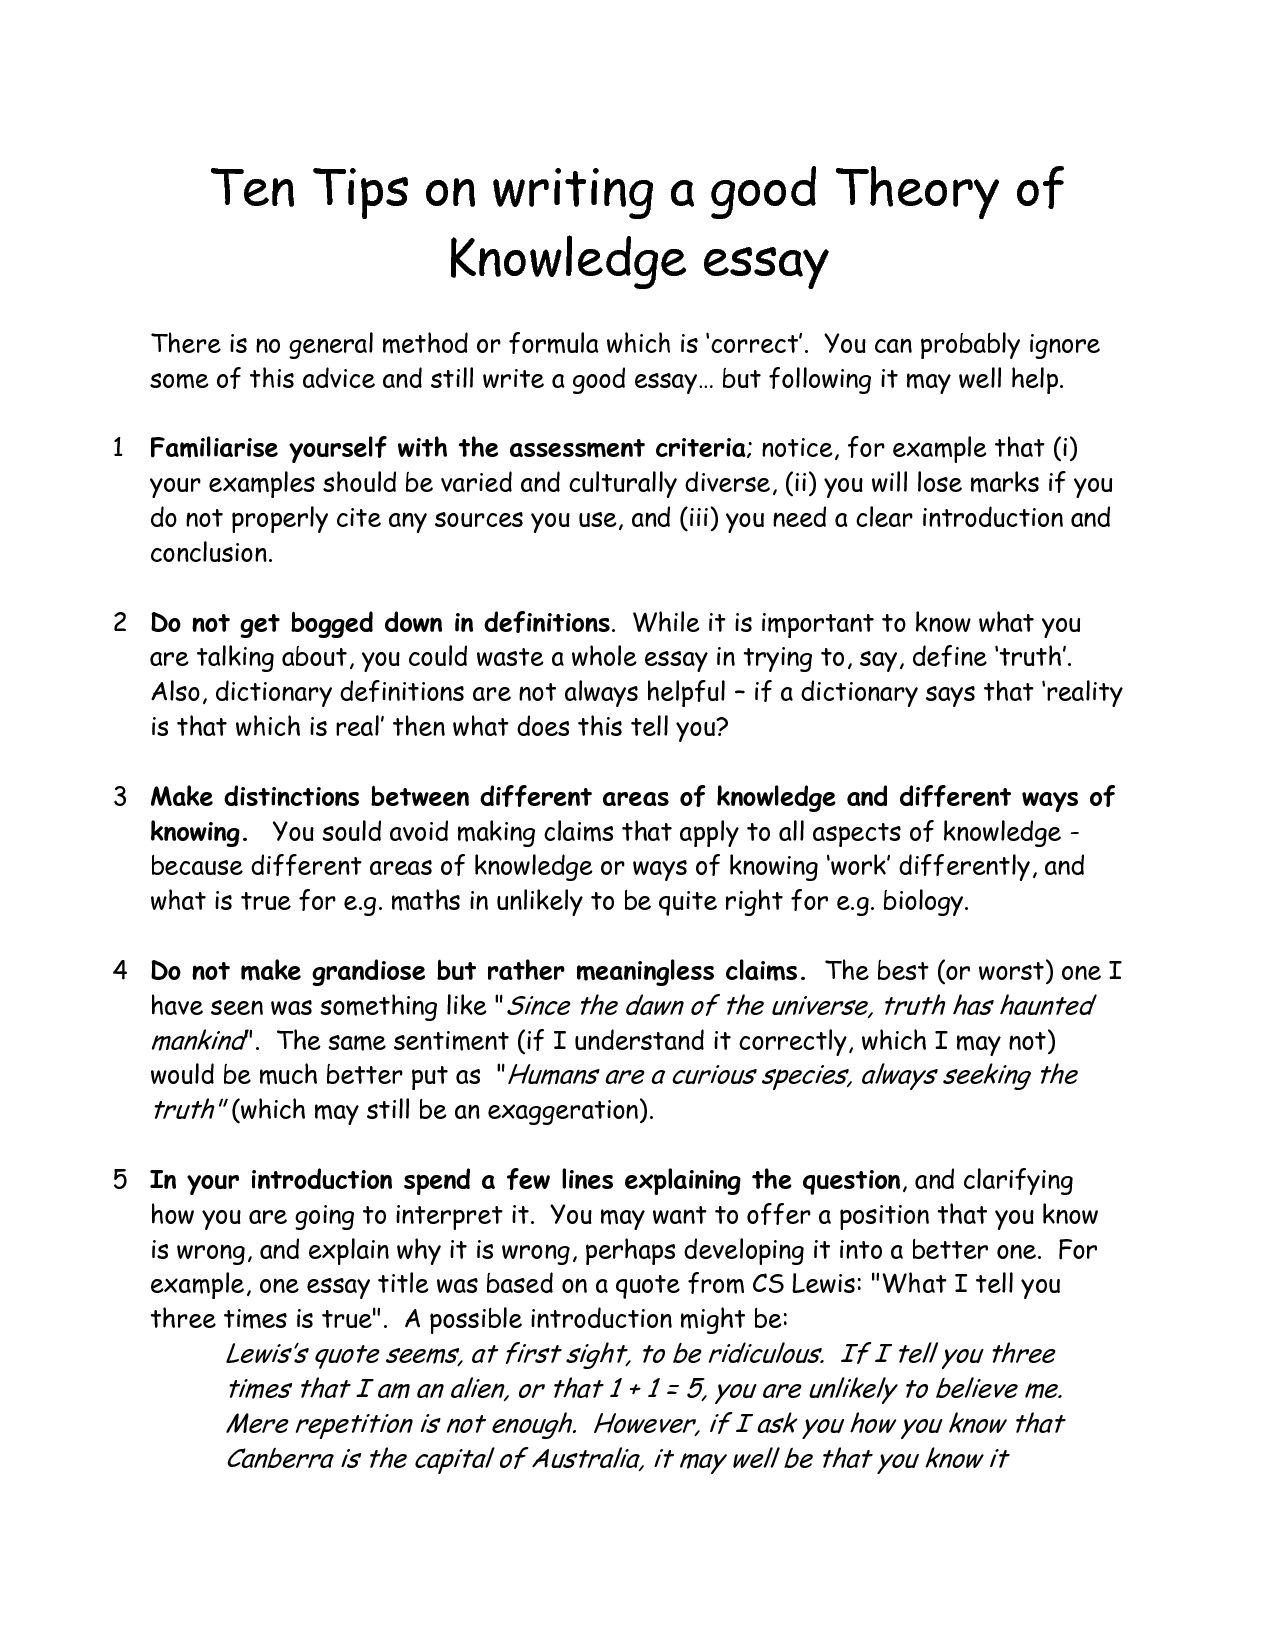 Research Paper Essay Essay About Myself As A Writer Health Essay Writing also Essay For Health Essay About Myself As A Writer  An Essay About Myself Writing  Examples Of A Thesis Statement In An Essay